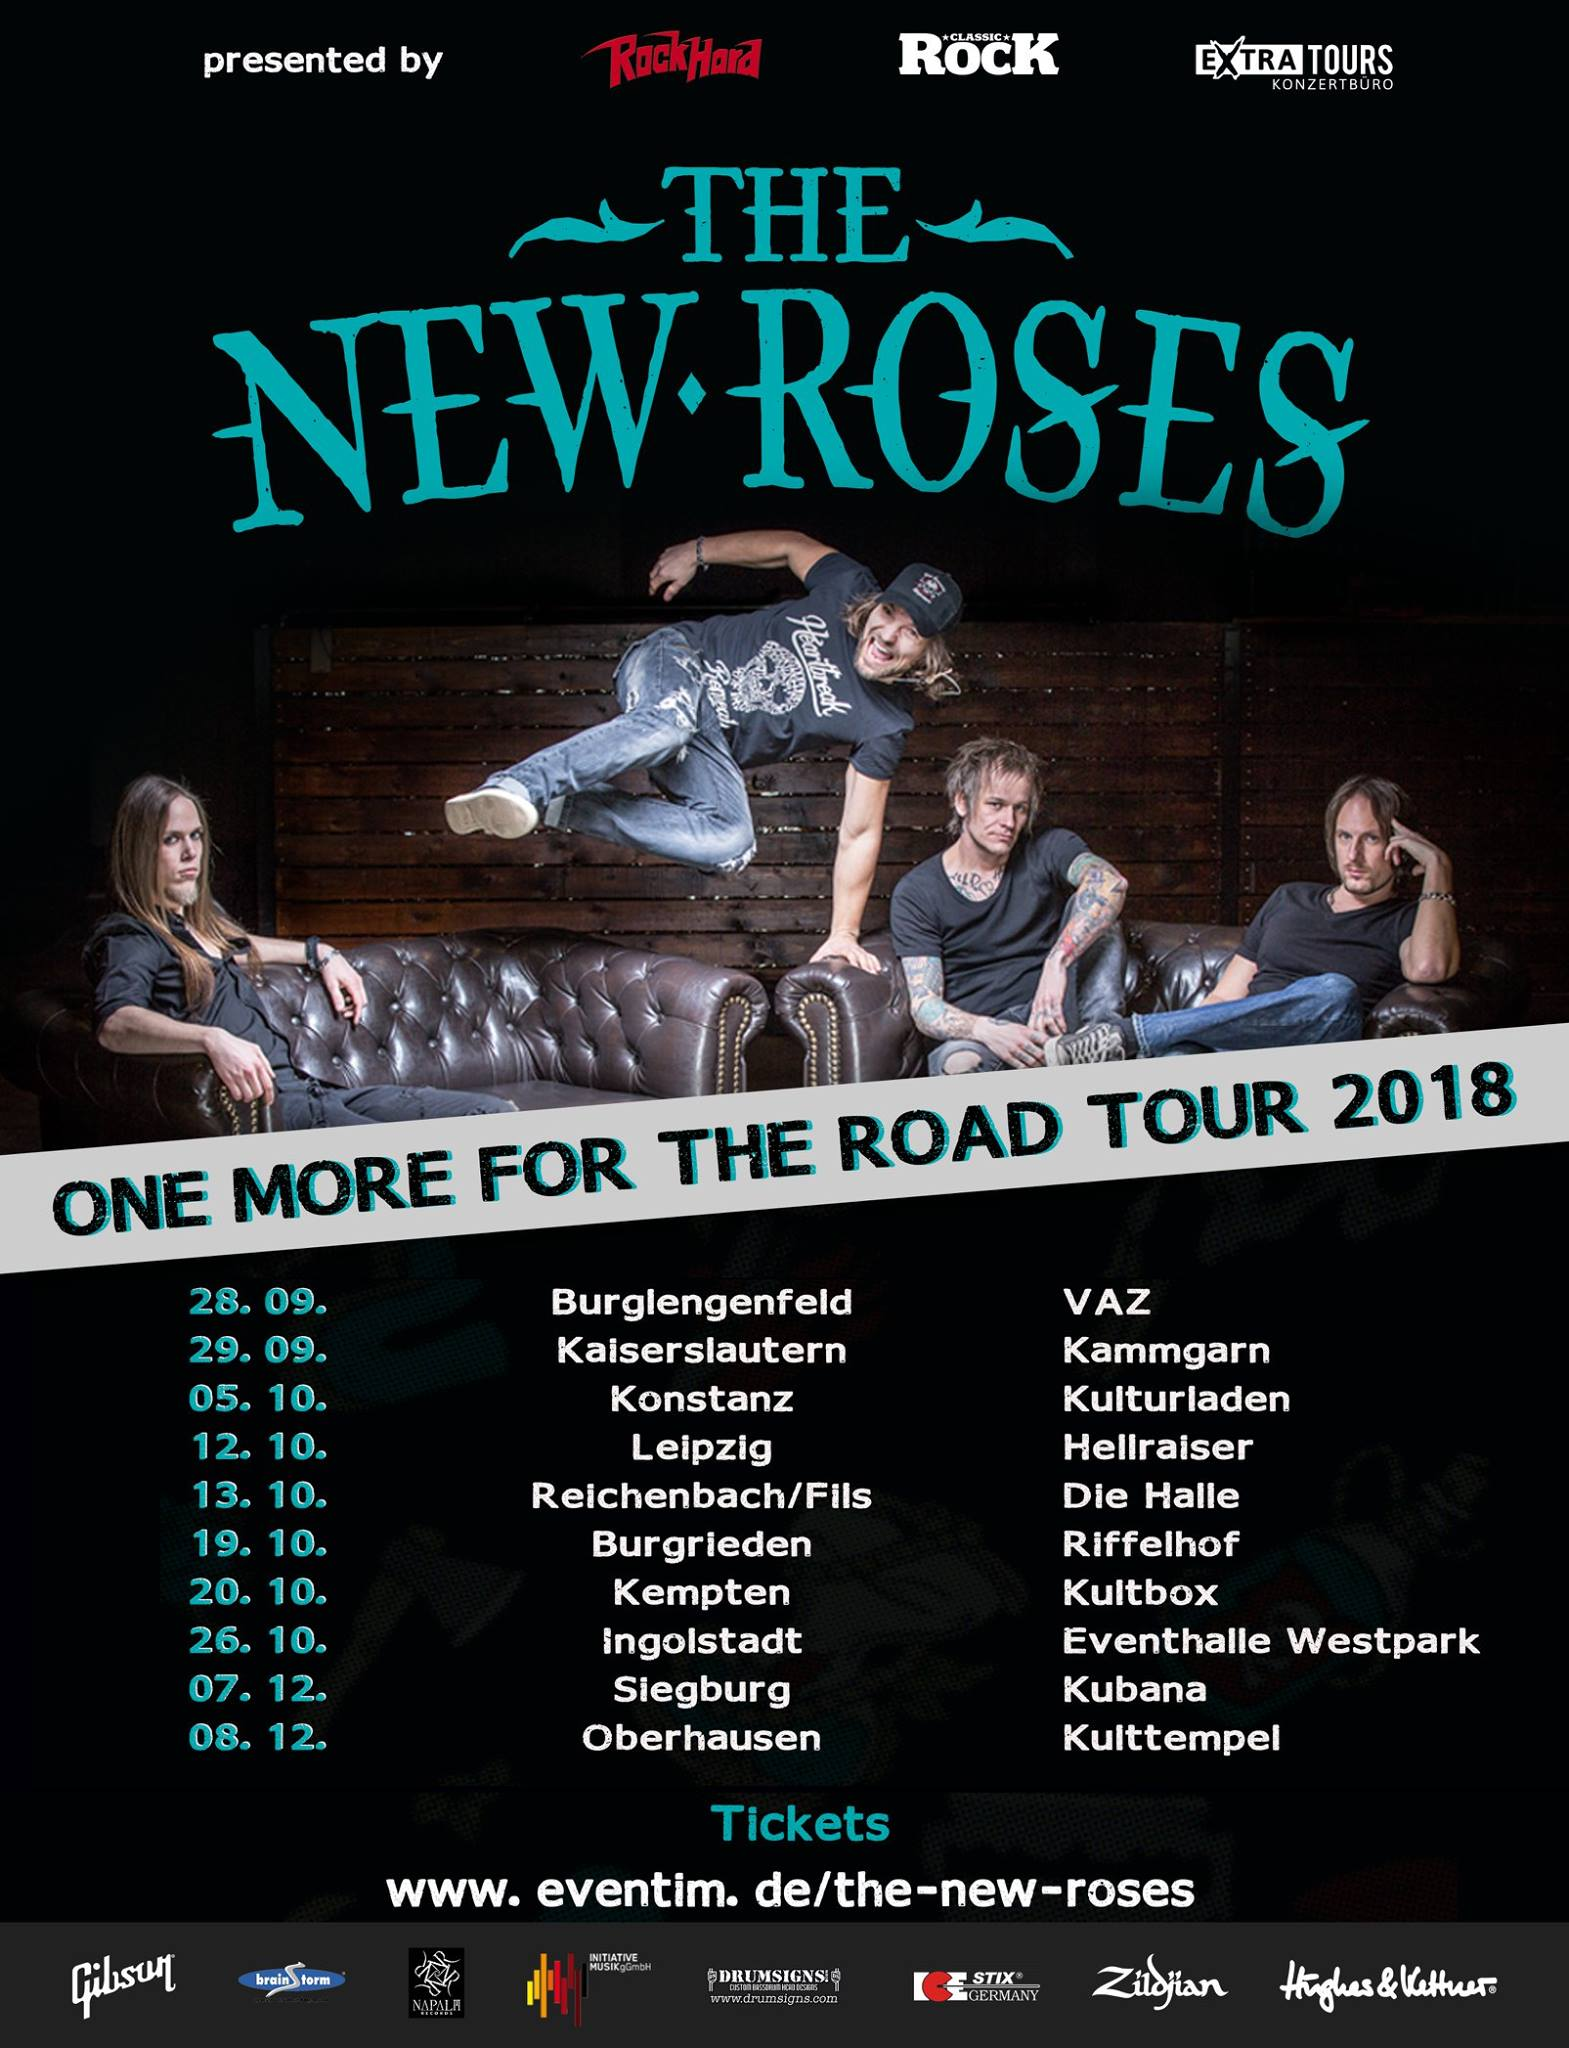 Tourplakat von The New Roses auf One More For The Road Tour 2018